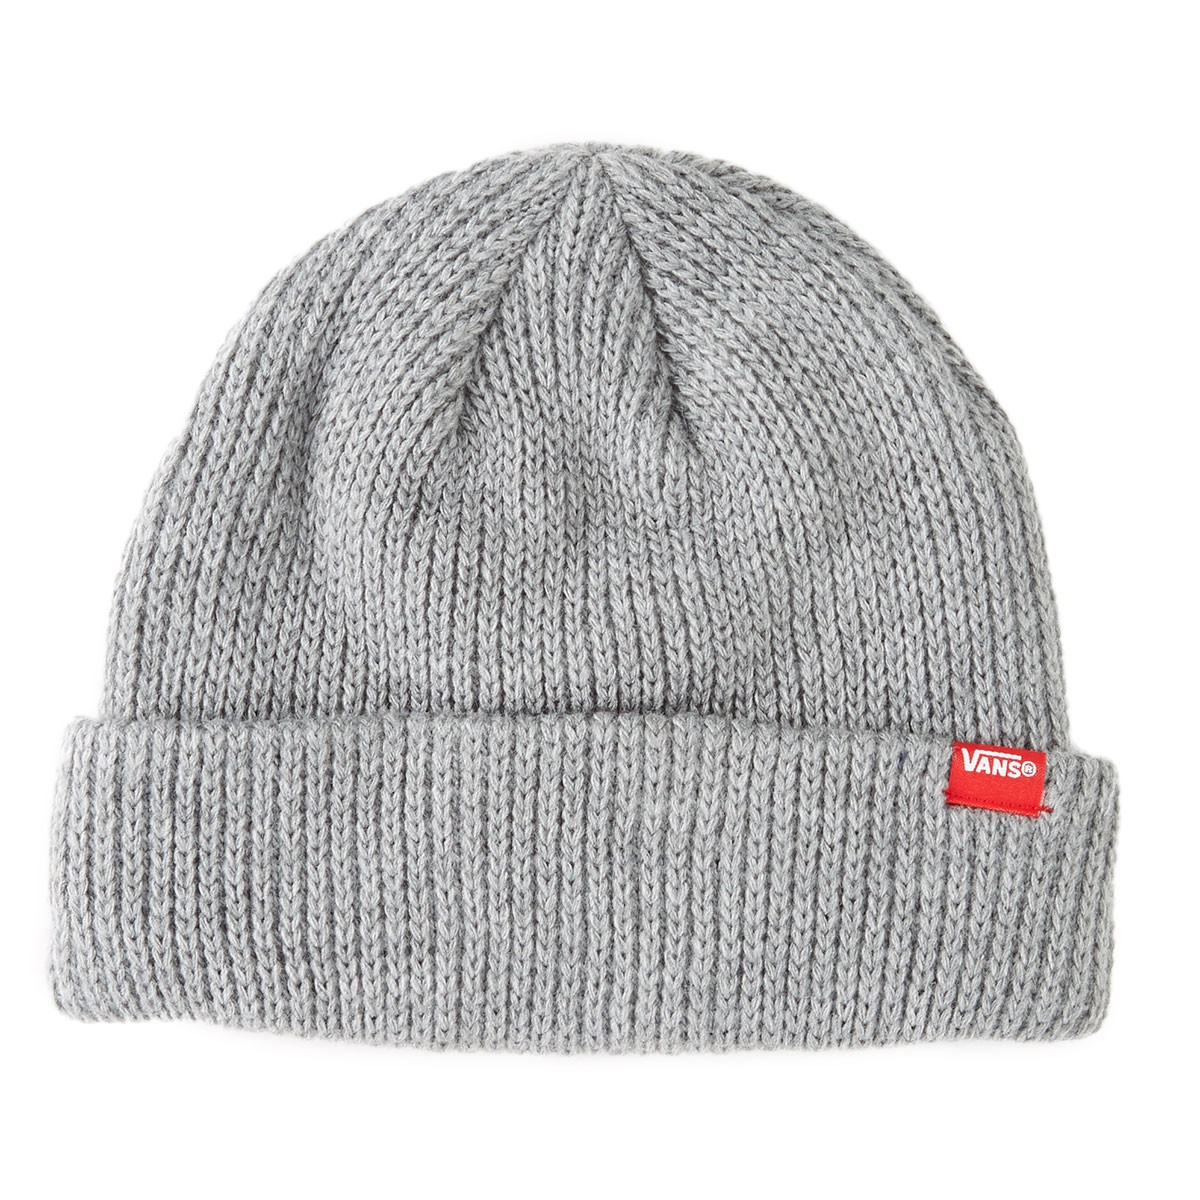 Vans Core Basics Beanie - Heather Grey 209e82ebe8d3